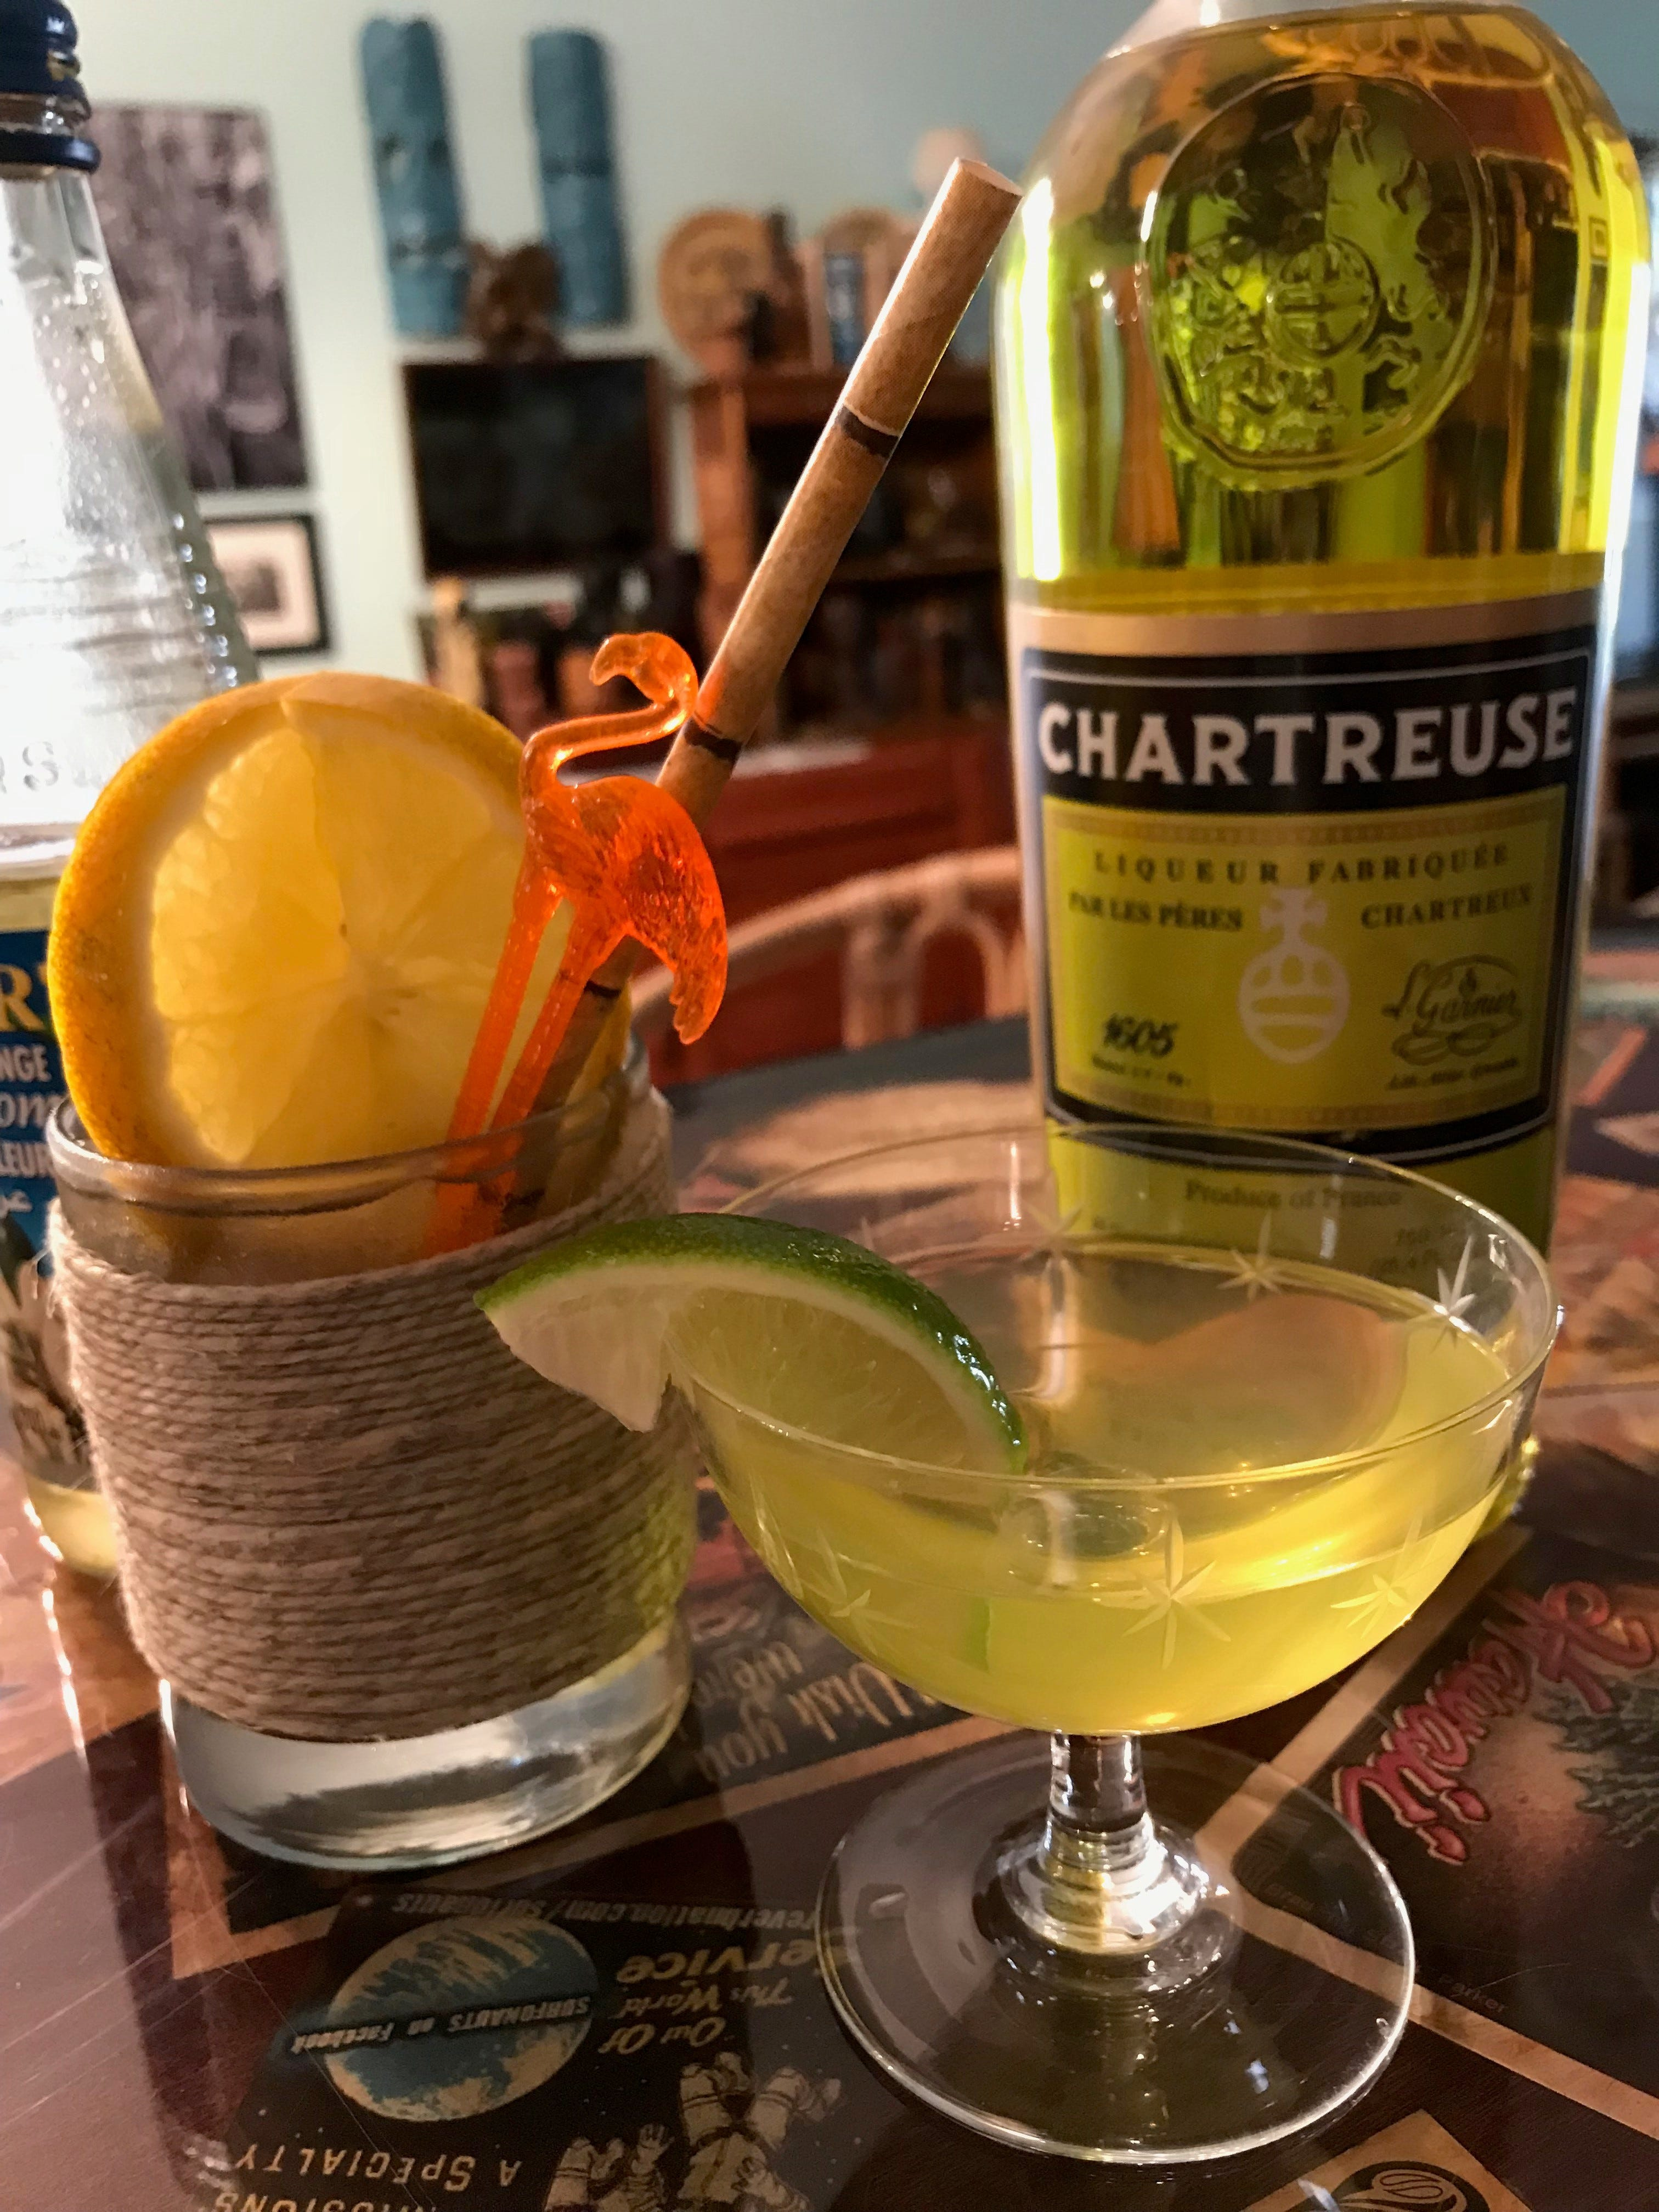 636517990429913008-CheersChartreuse Cheers! Take a sip of these 5 cocktail trends in 2018